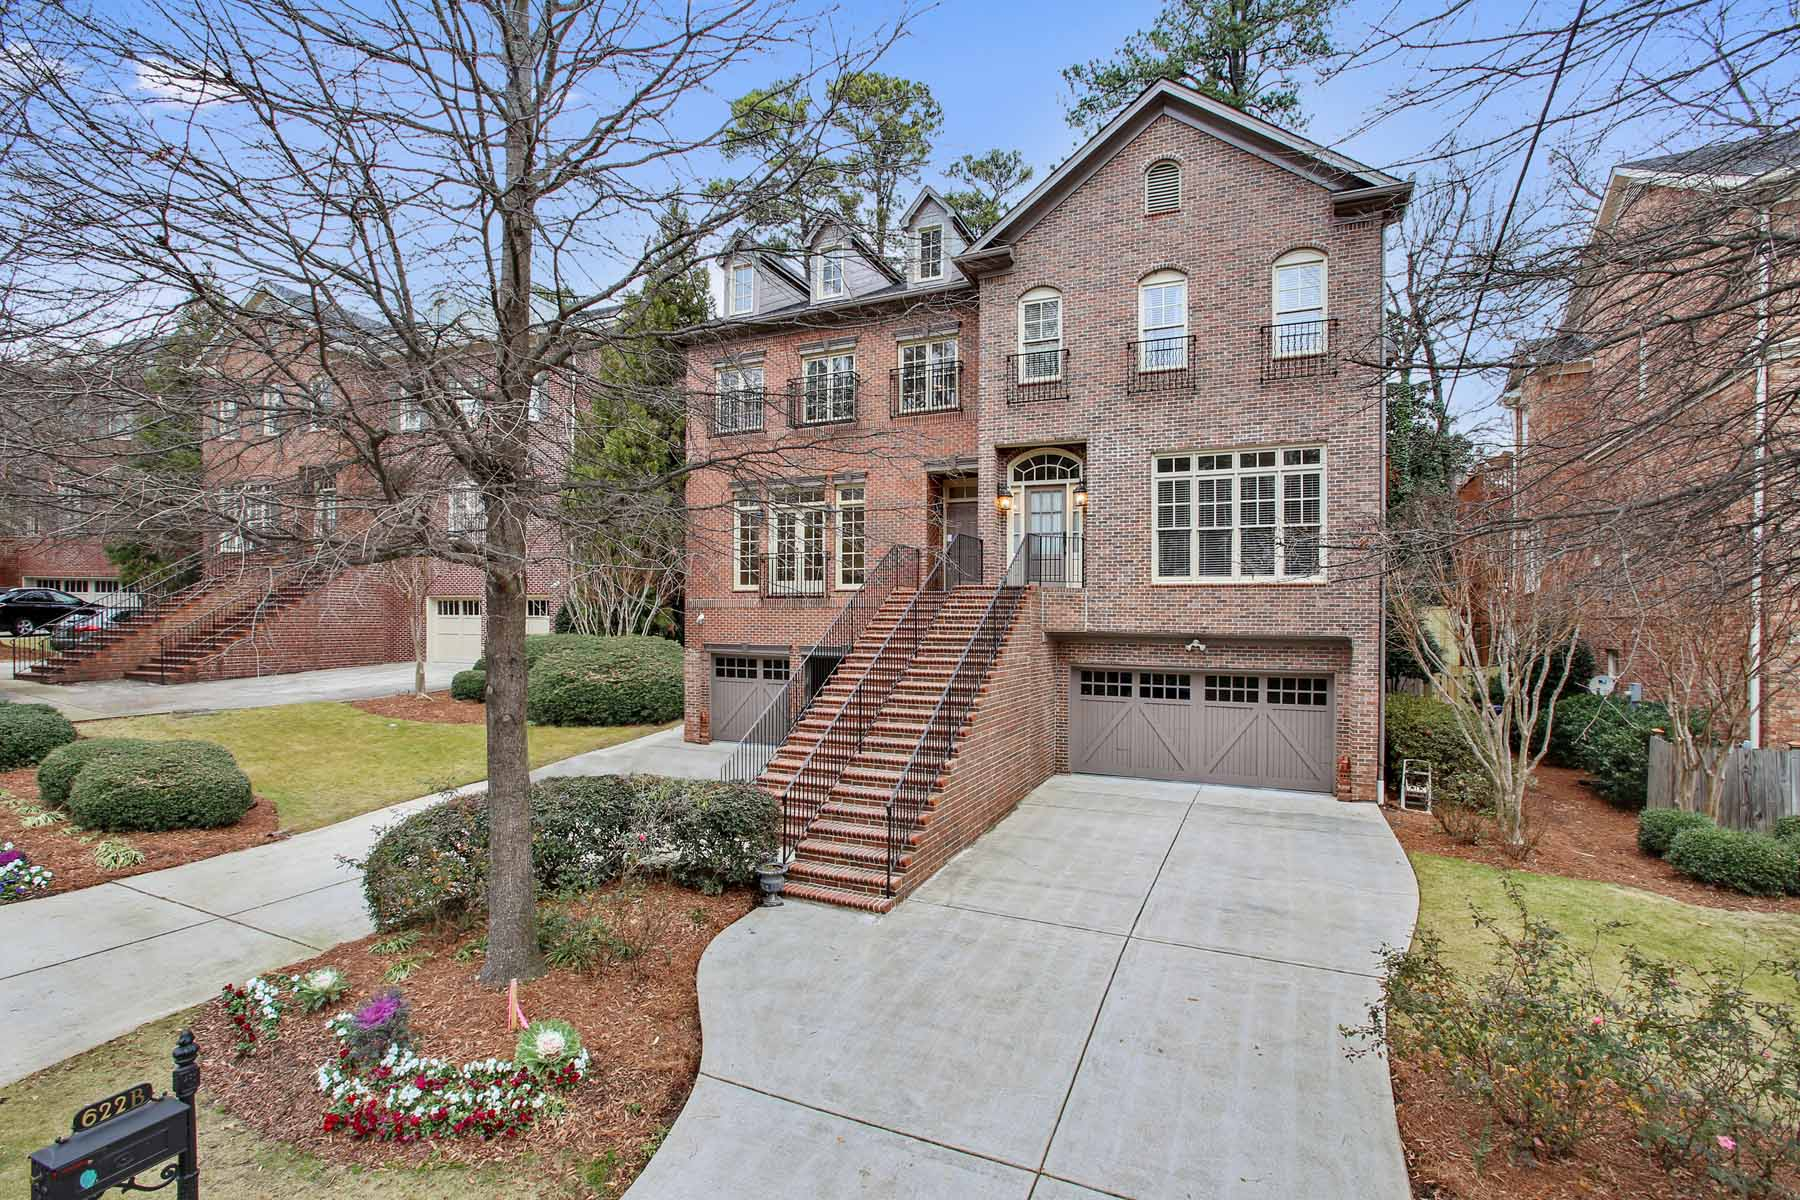 Townhouse for Sale at Exquisite Townhouse in Peachtree Park 622 Timm Valley Road NE Unit B Peachtree Park, Atlanta, Georgia, 30305 United States